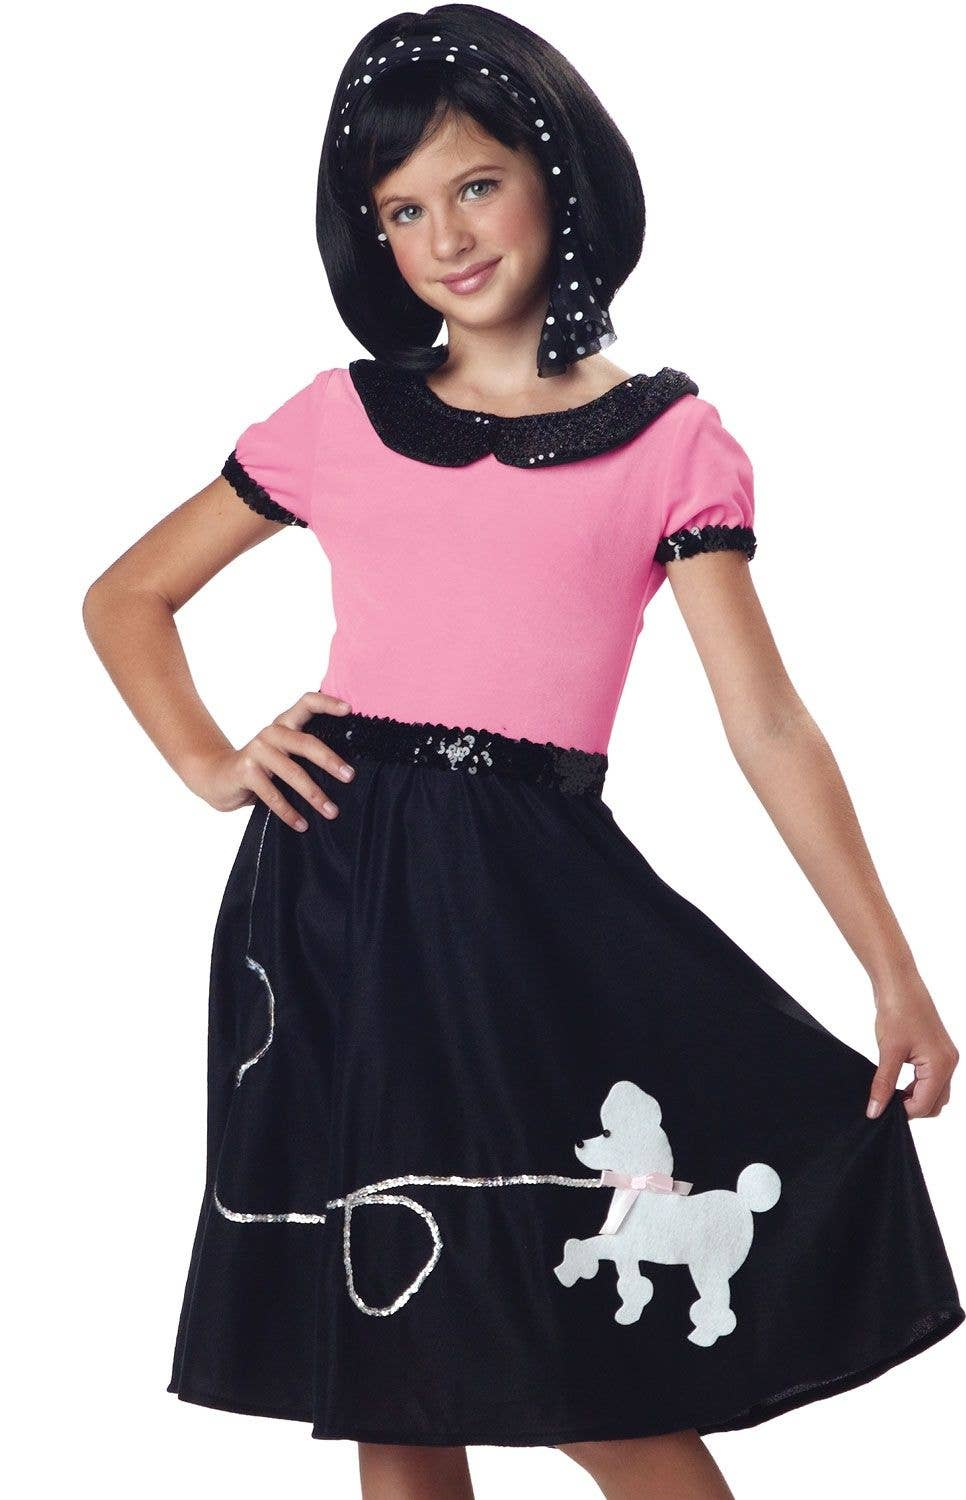 20a1d97a4d8c3 50's Pink and White Girls Sock Hop Costume Image 2